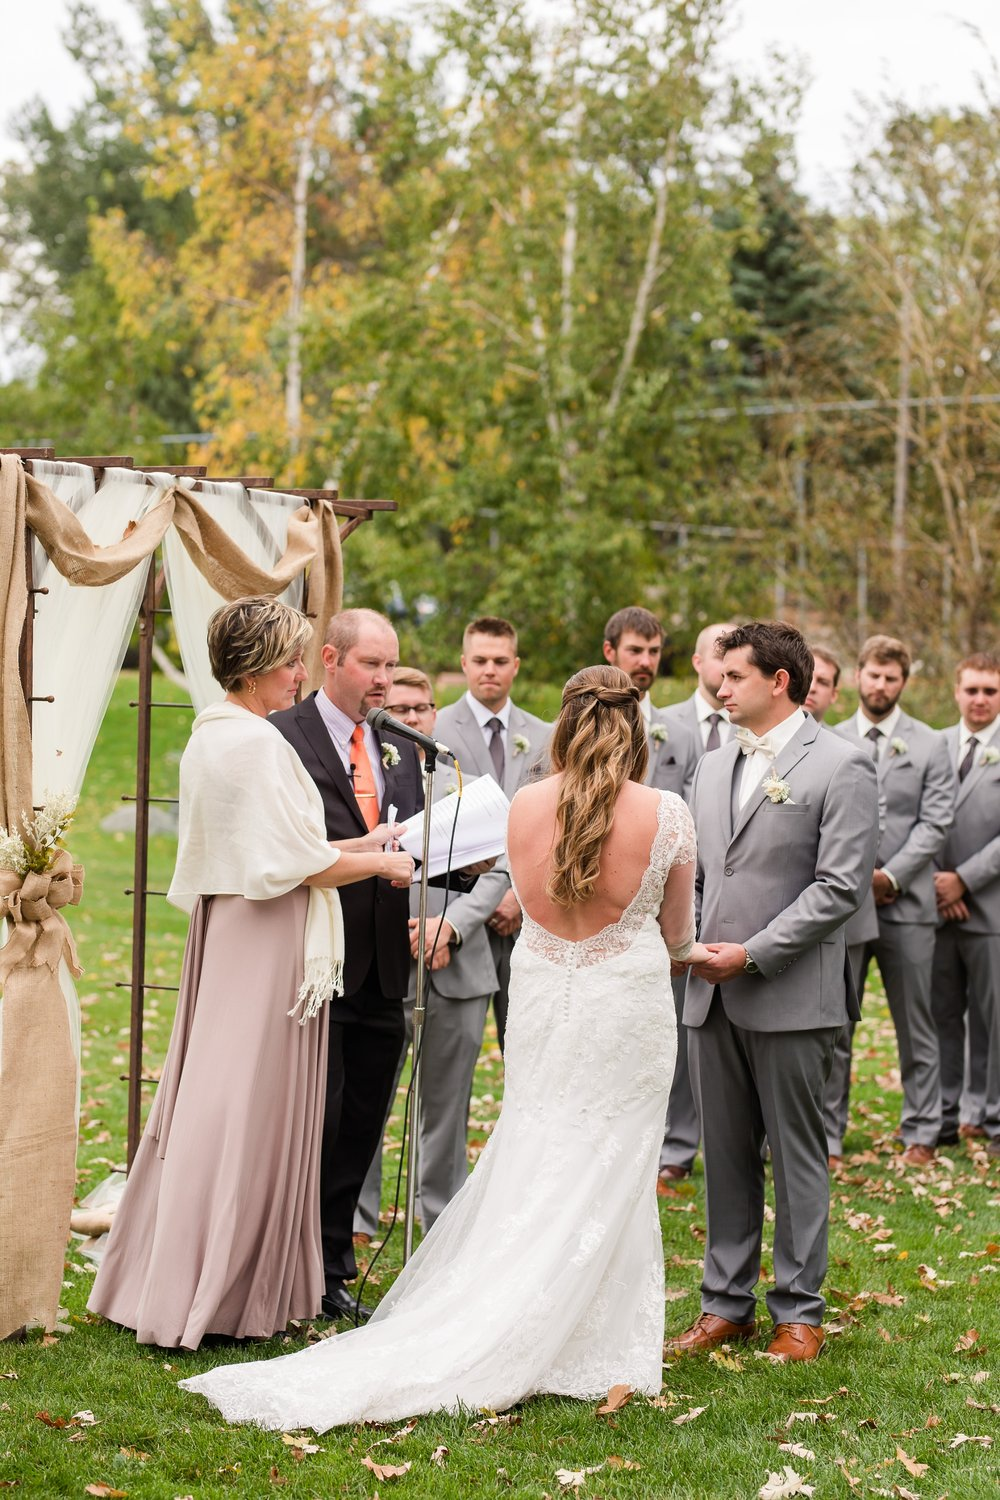 AmberLangerudPhotography_Fair Hills Resort Lakeside Wedding in Minnesota_3466.jpg